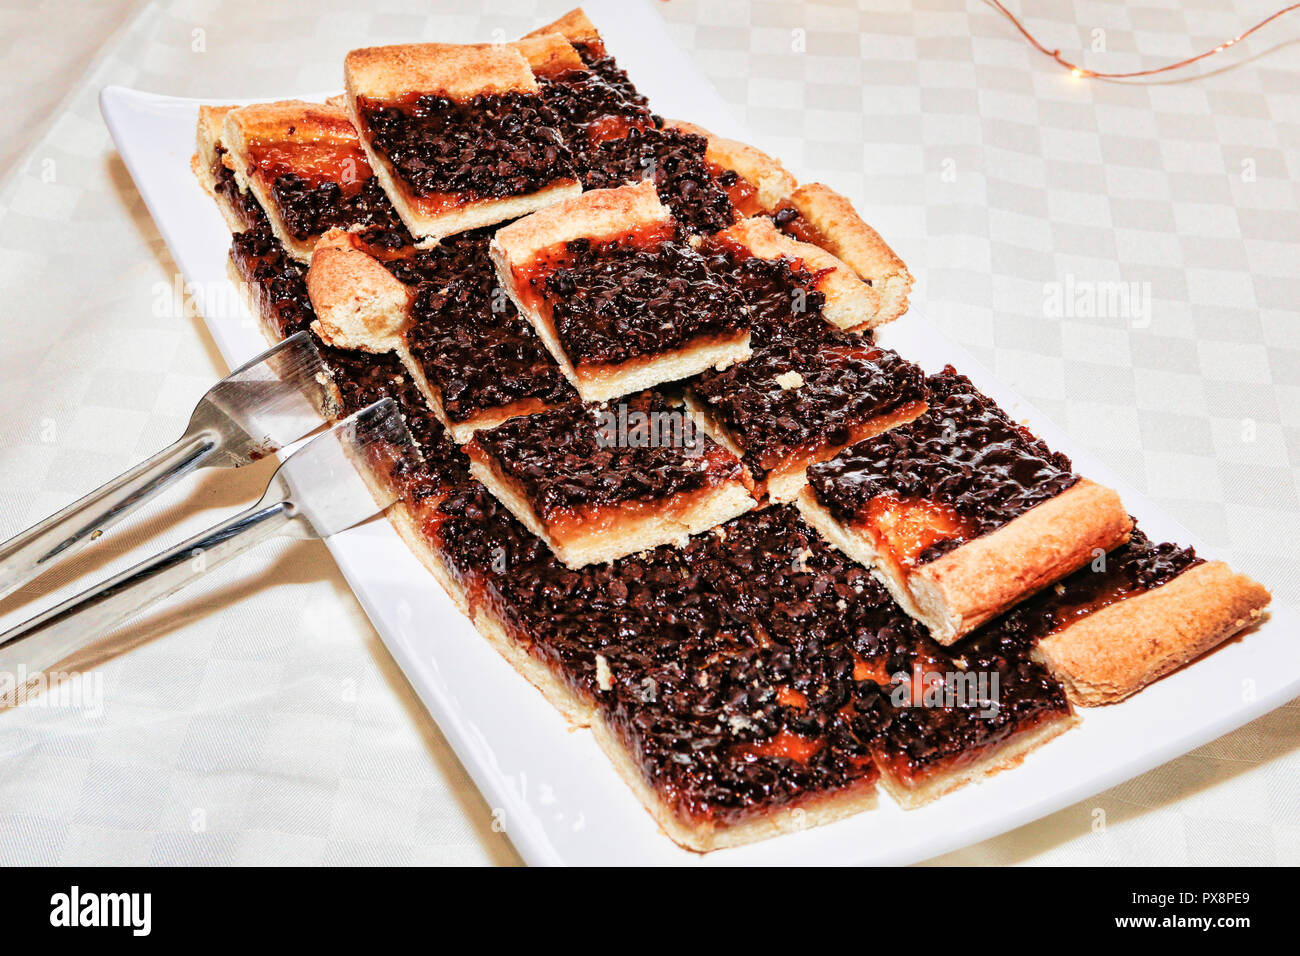 Tray with many pieces of icing blueberry pie - Stock Image